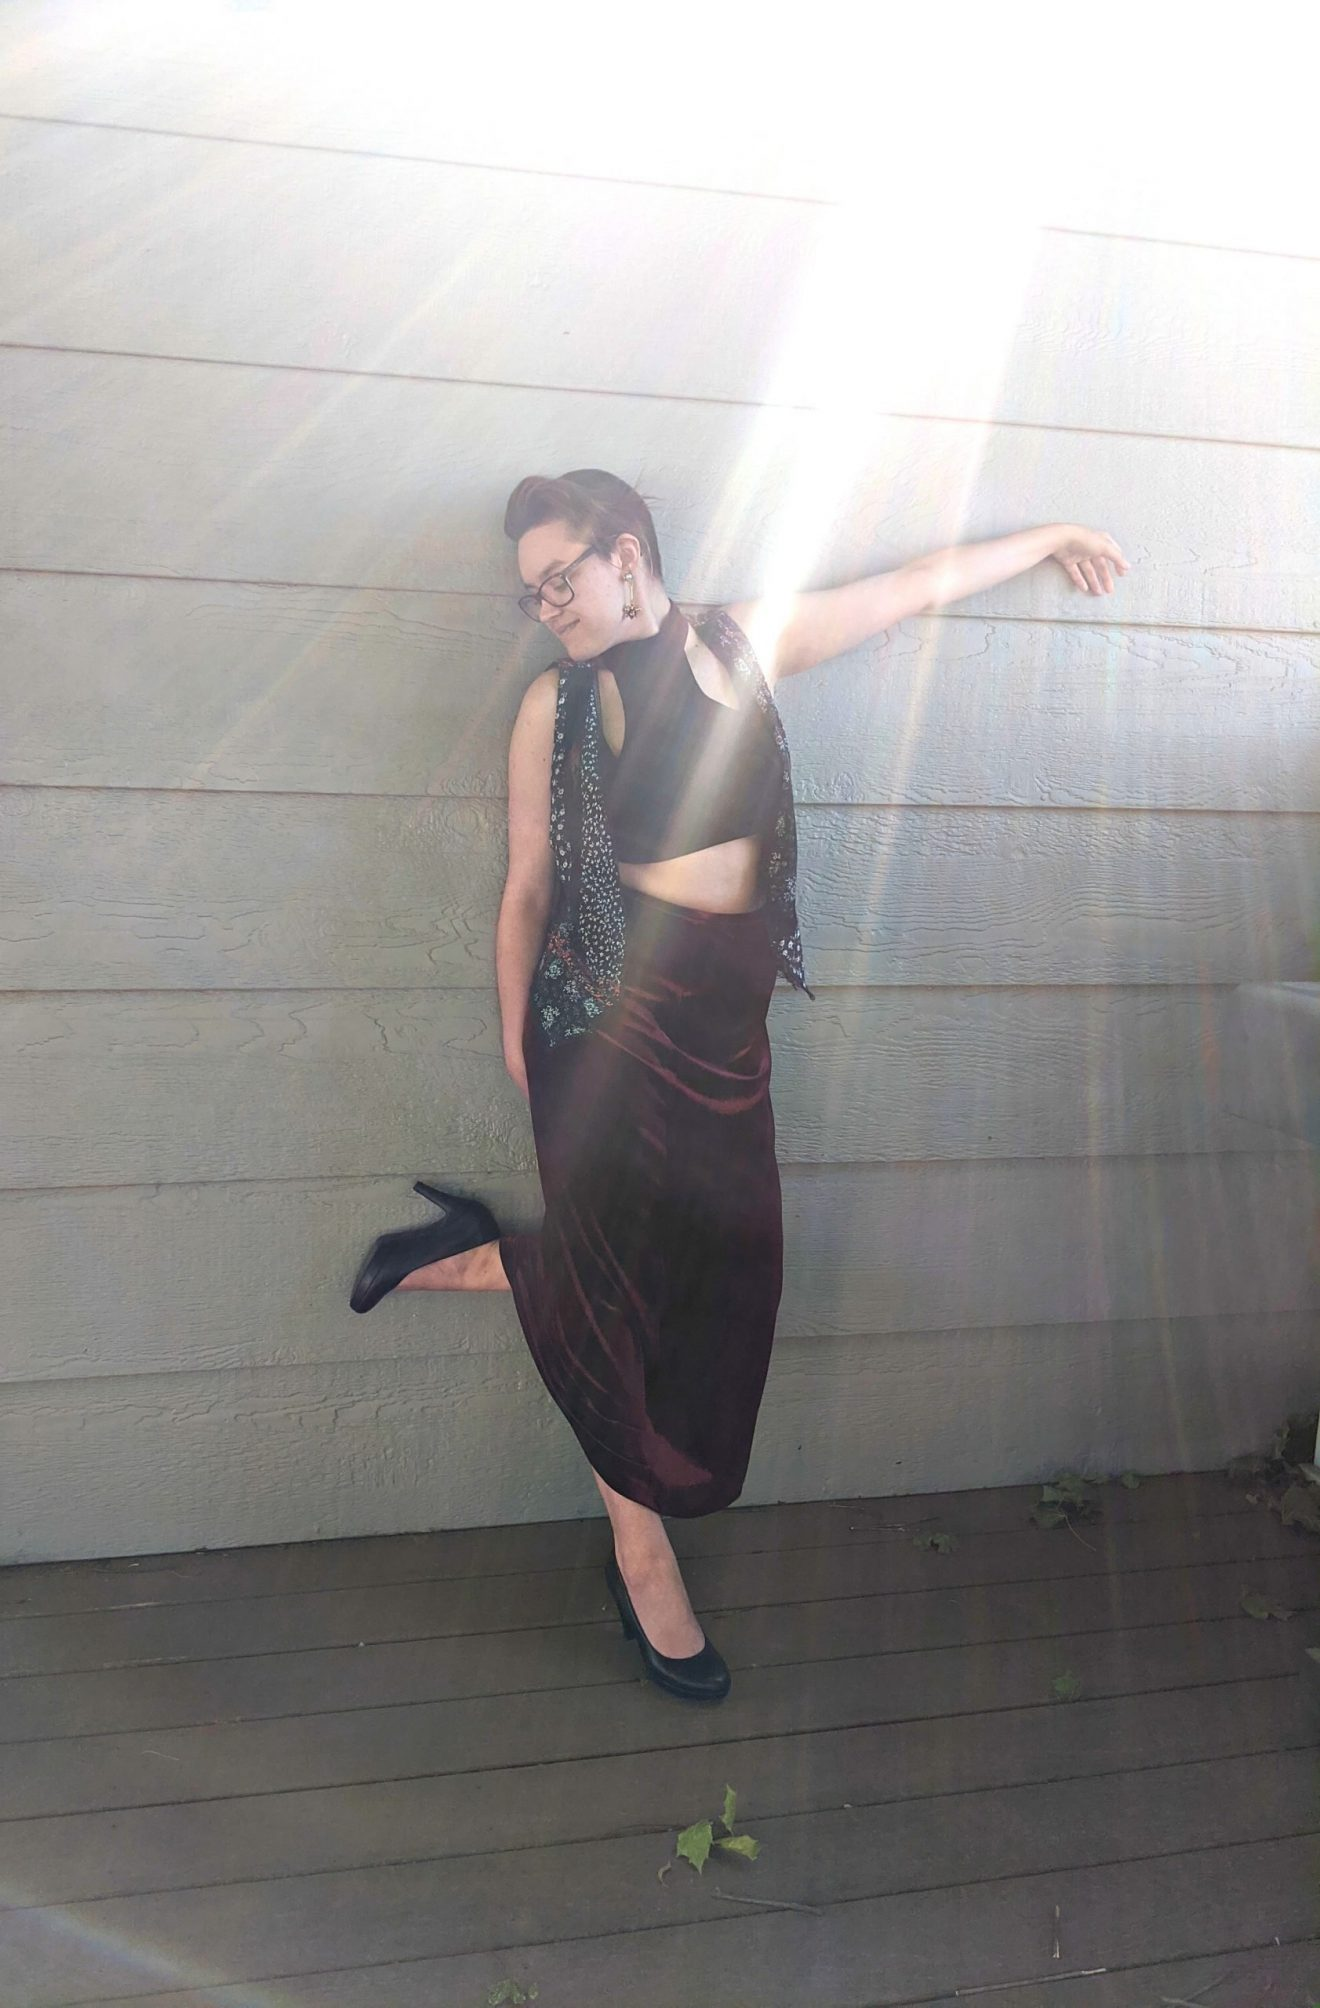 I Feared Waking Up Alissa Ackerman Story Behind The Cloth fashion blog vintage antique witchy bohemian outfit 26 scaled